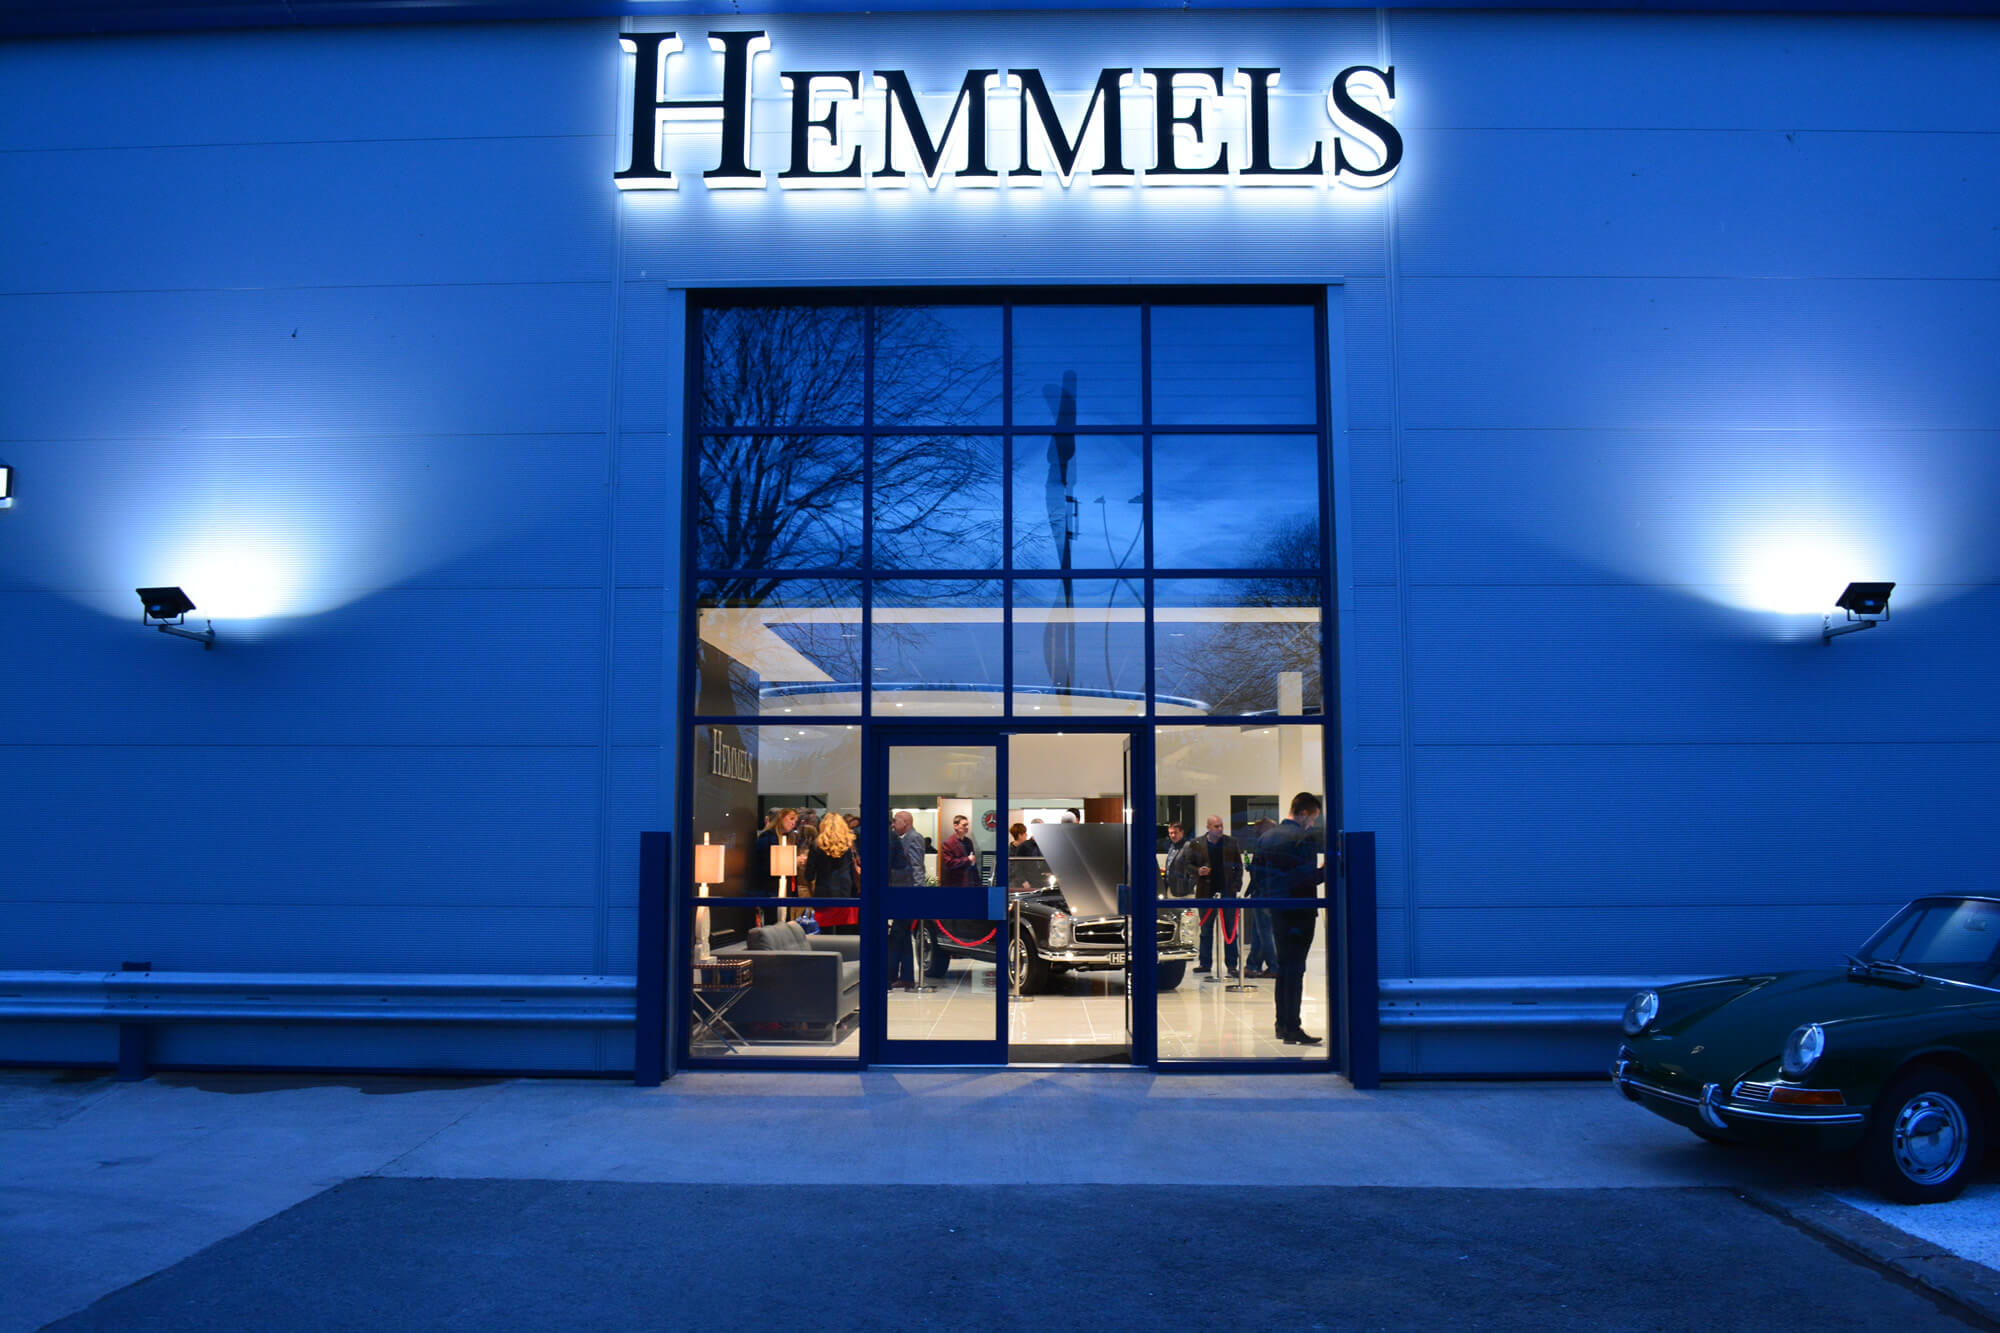 classic mercedes specialists international hemmels